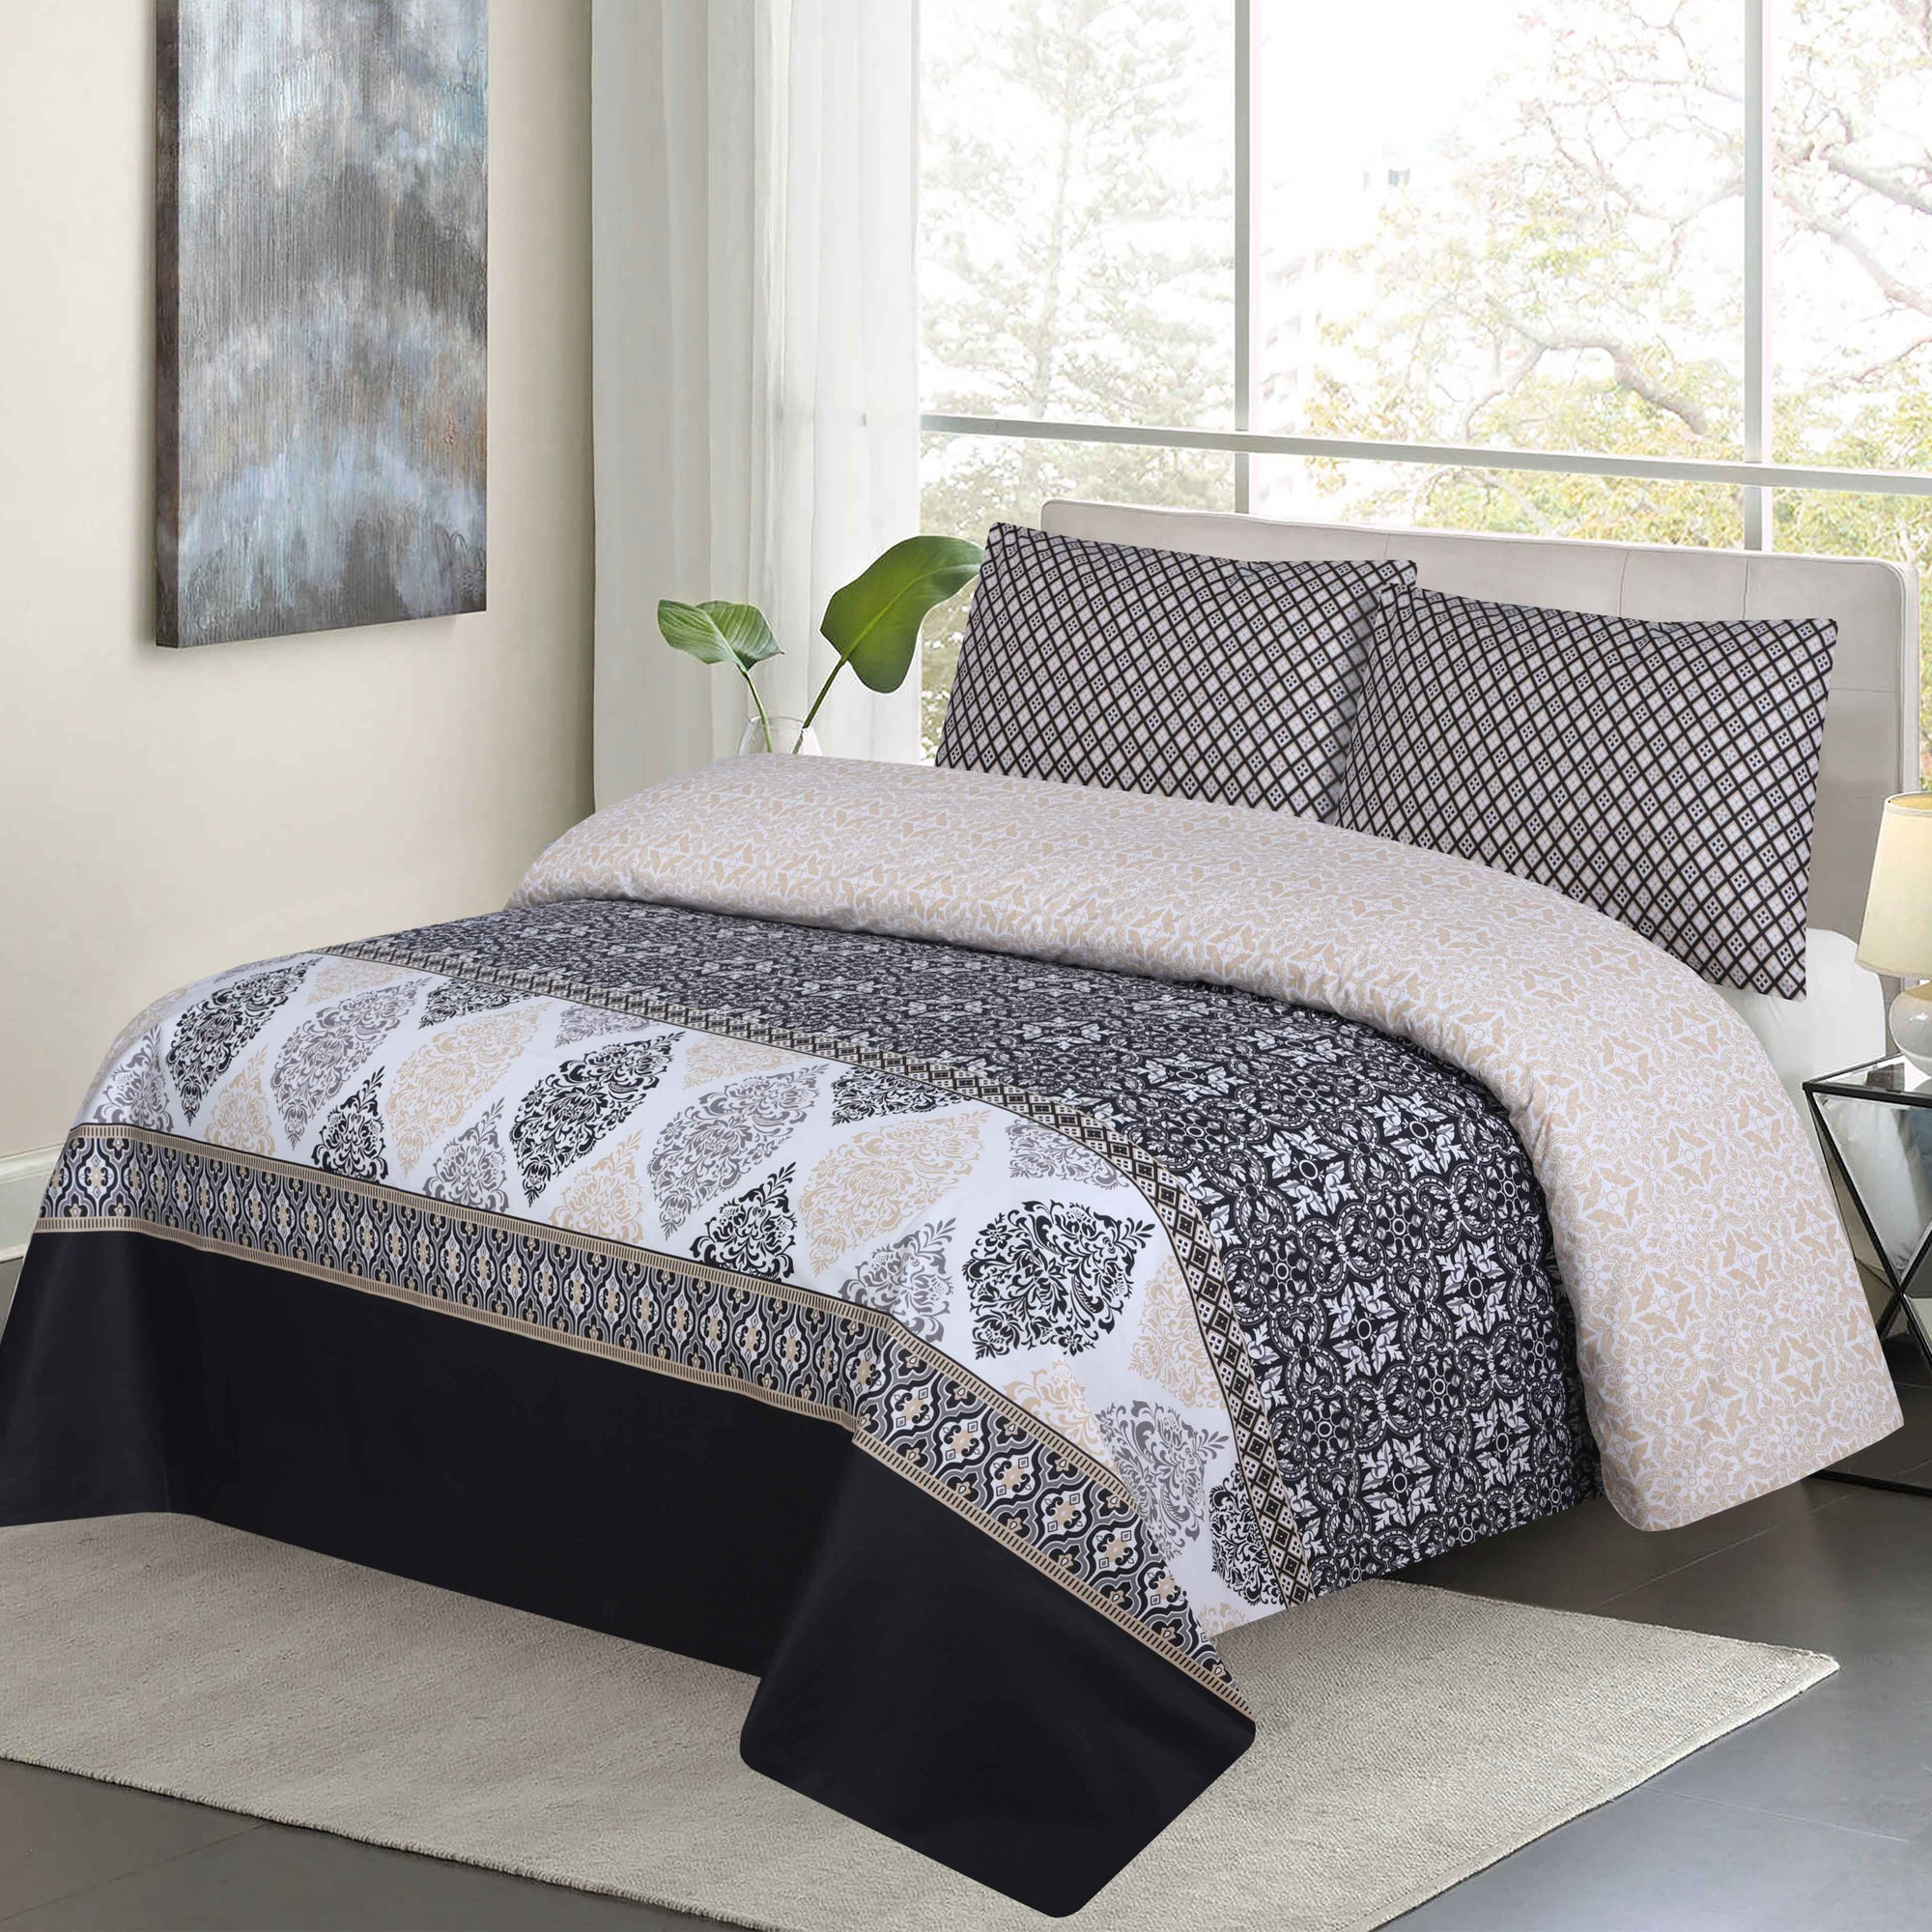 Grace D155 - Mix Cotton King Size Bedsheet with 2 Pillow Covers.